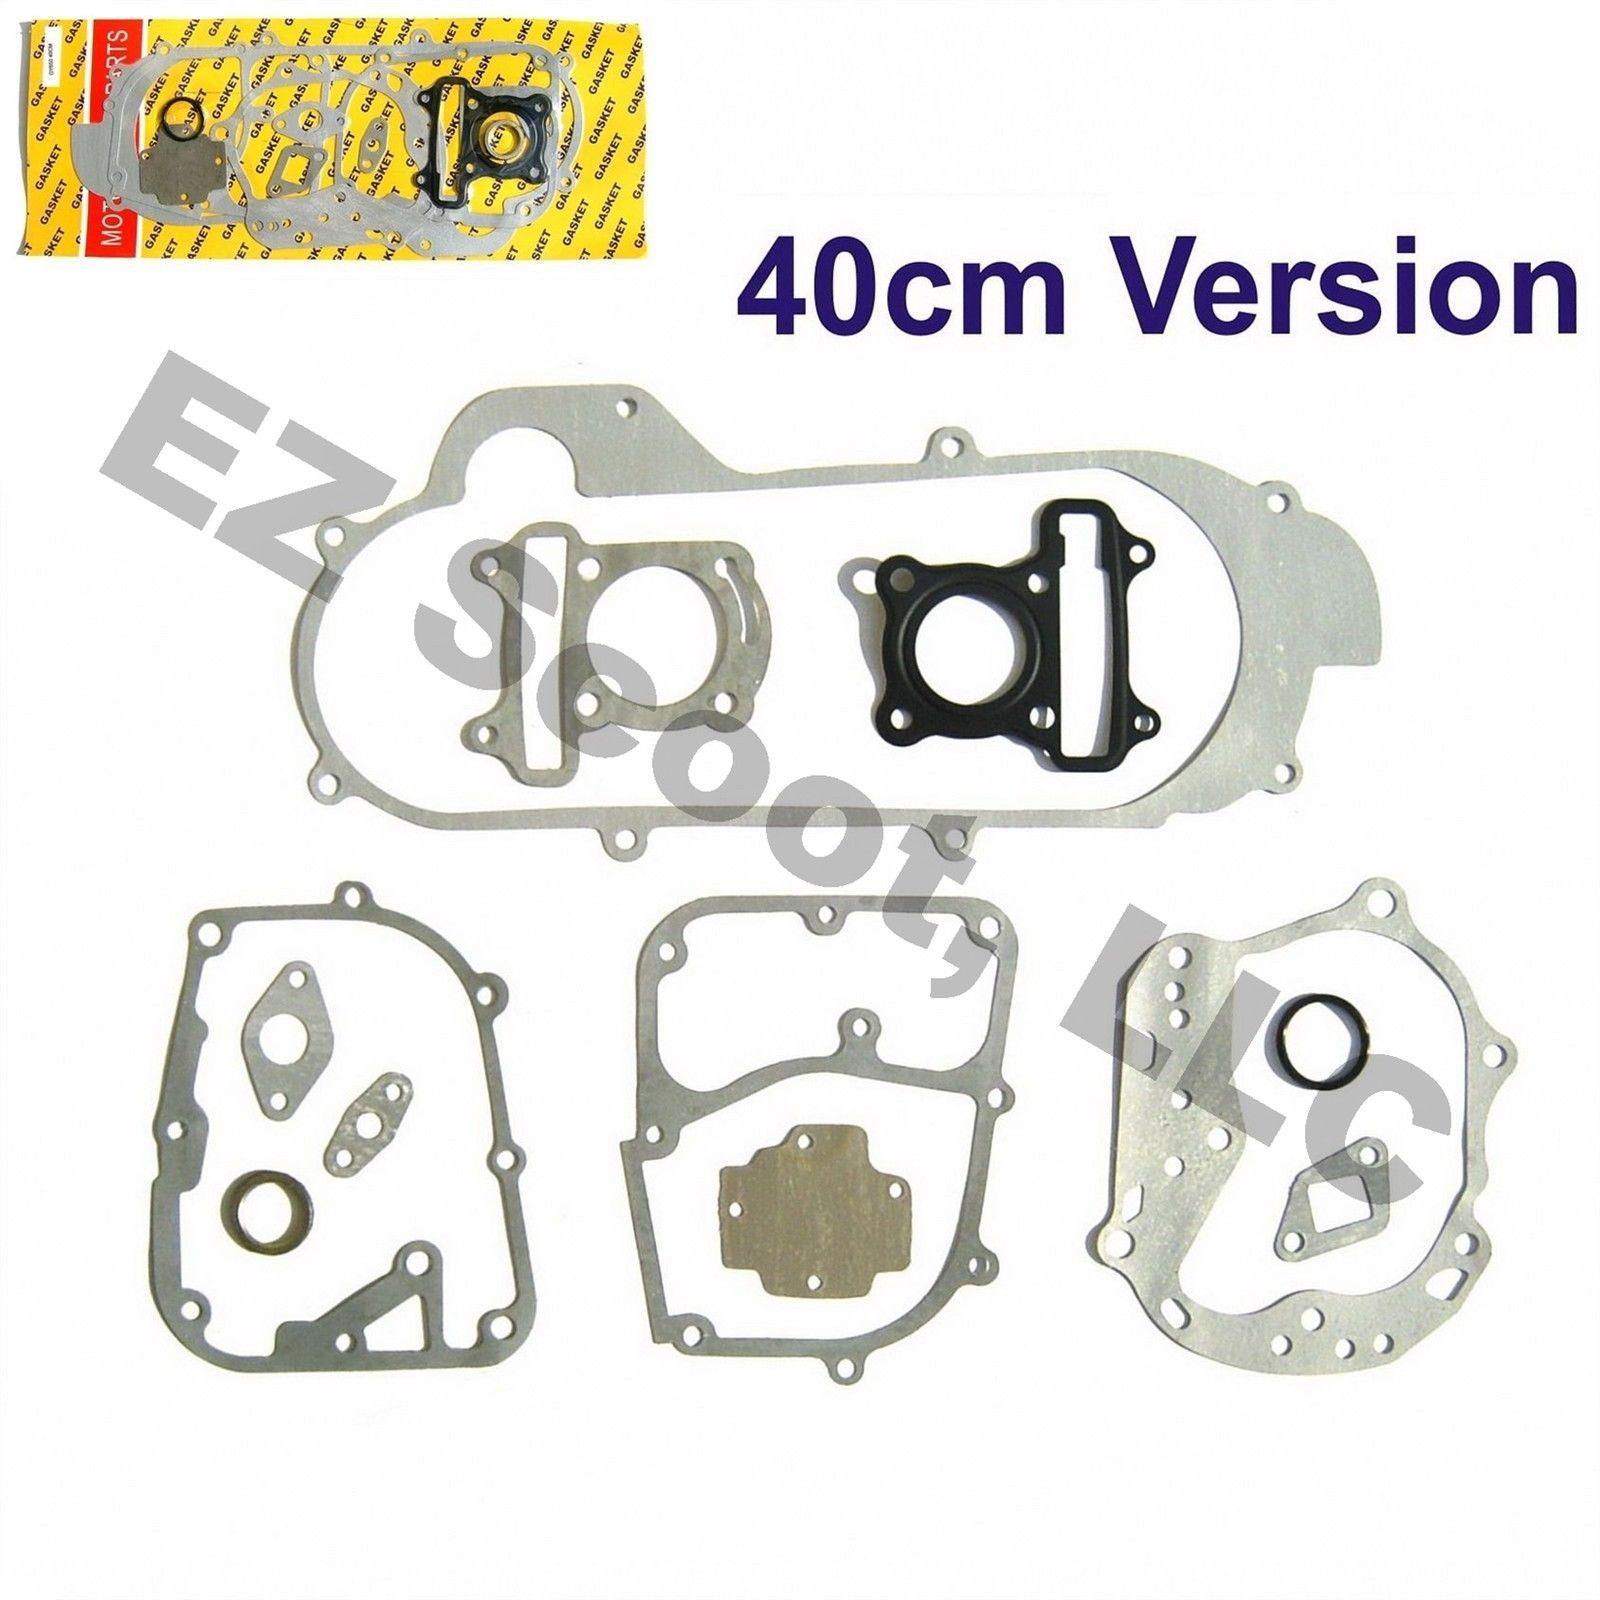 complete engine gasket set 50cc 40cm gy6 4 stroke chinese scooter 139 qma b ebay [ 1600 x 1600 Pixel ]